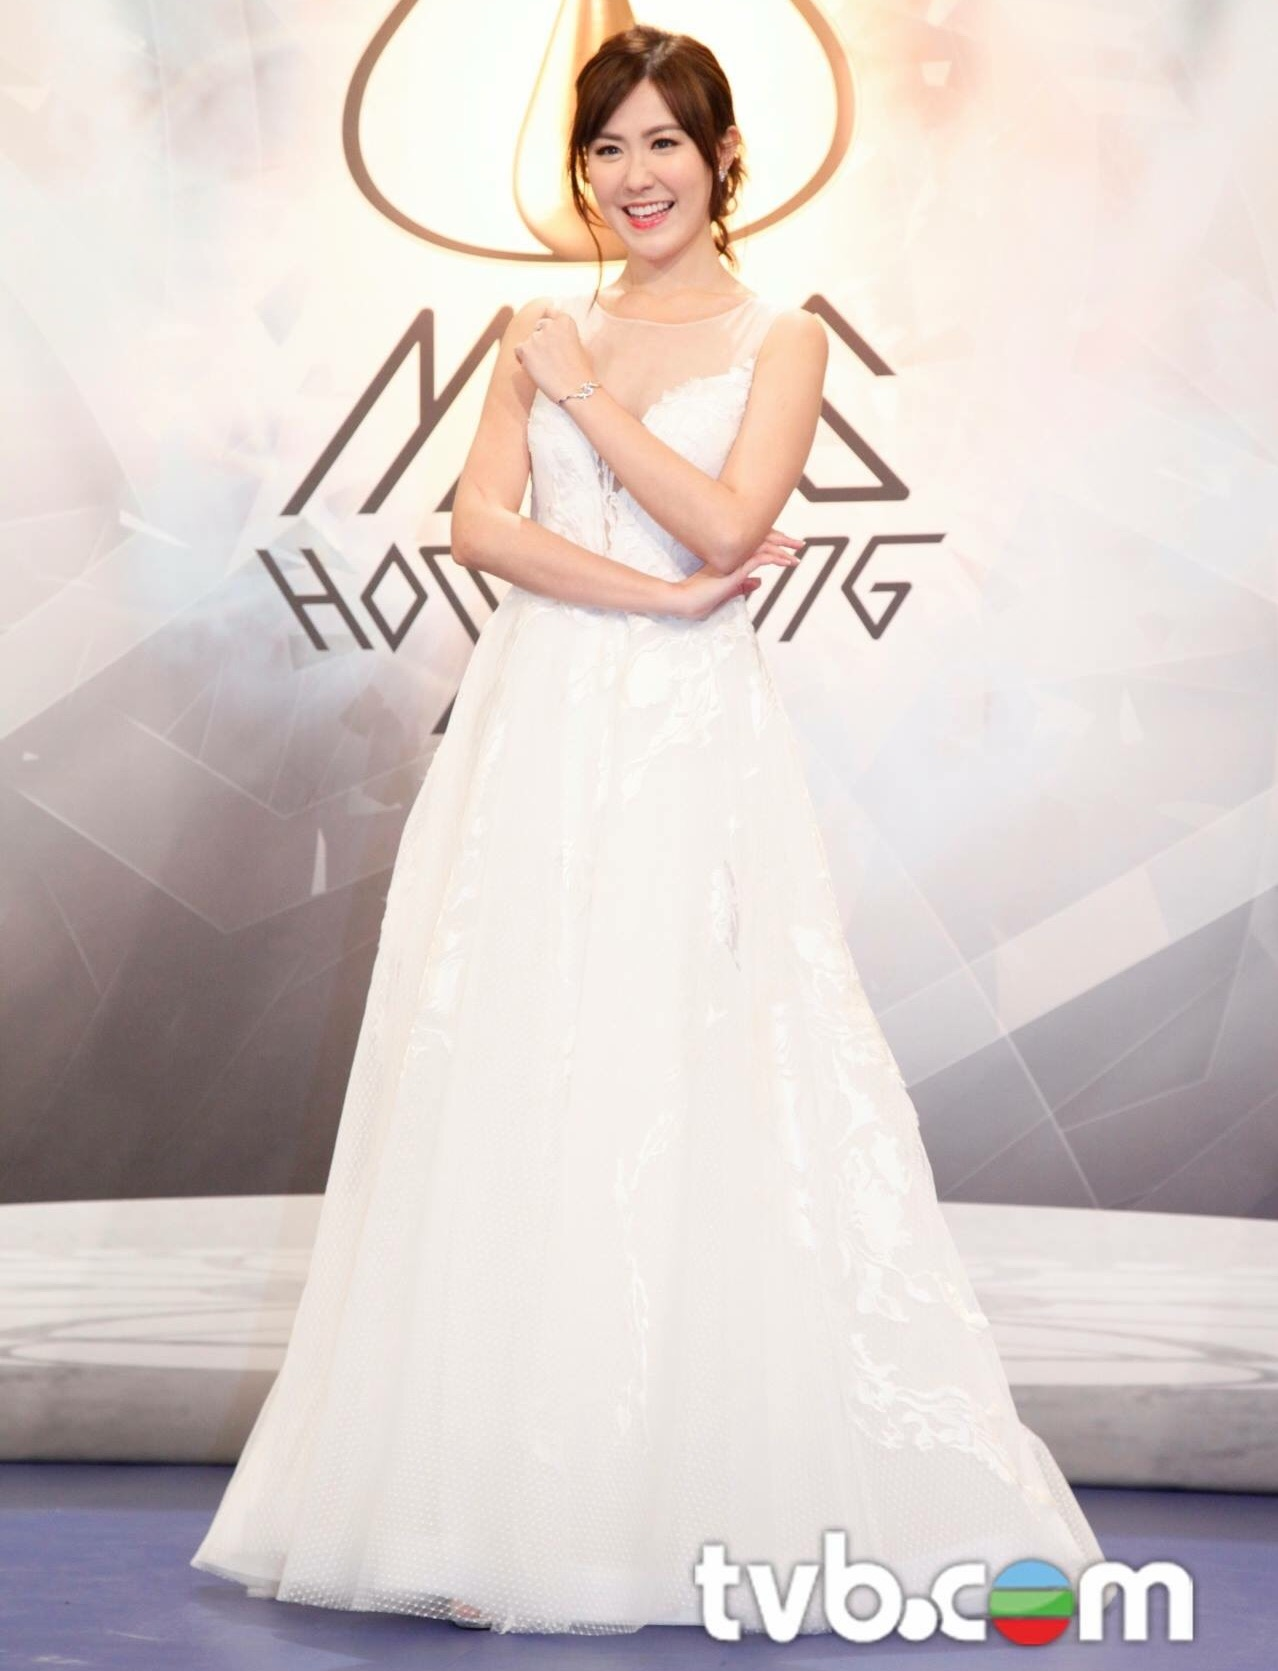 Moon in our white evening look at the Miss Hong Kong 2016 show event